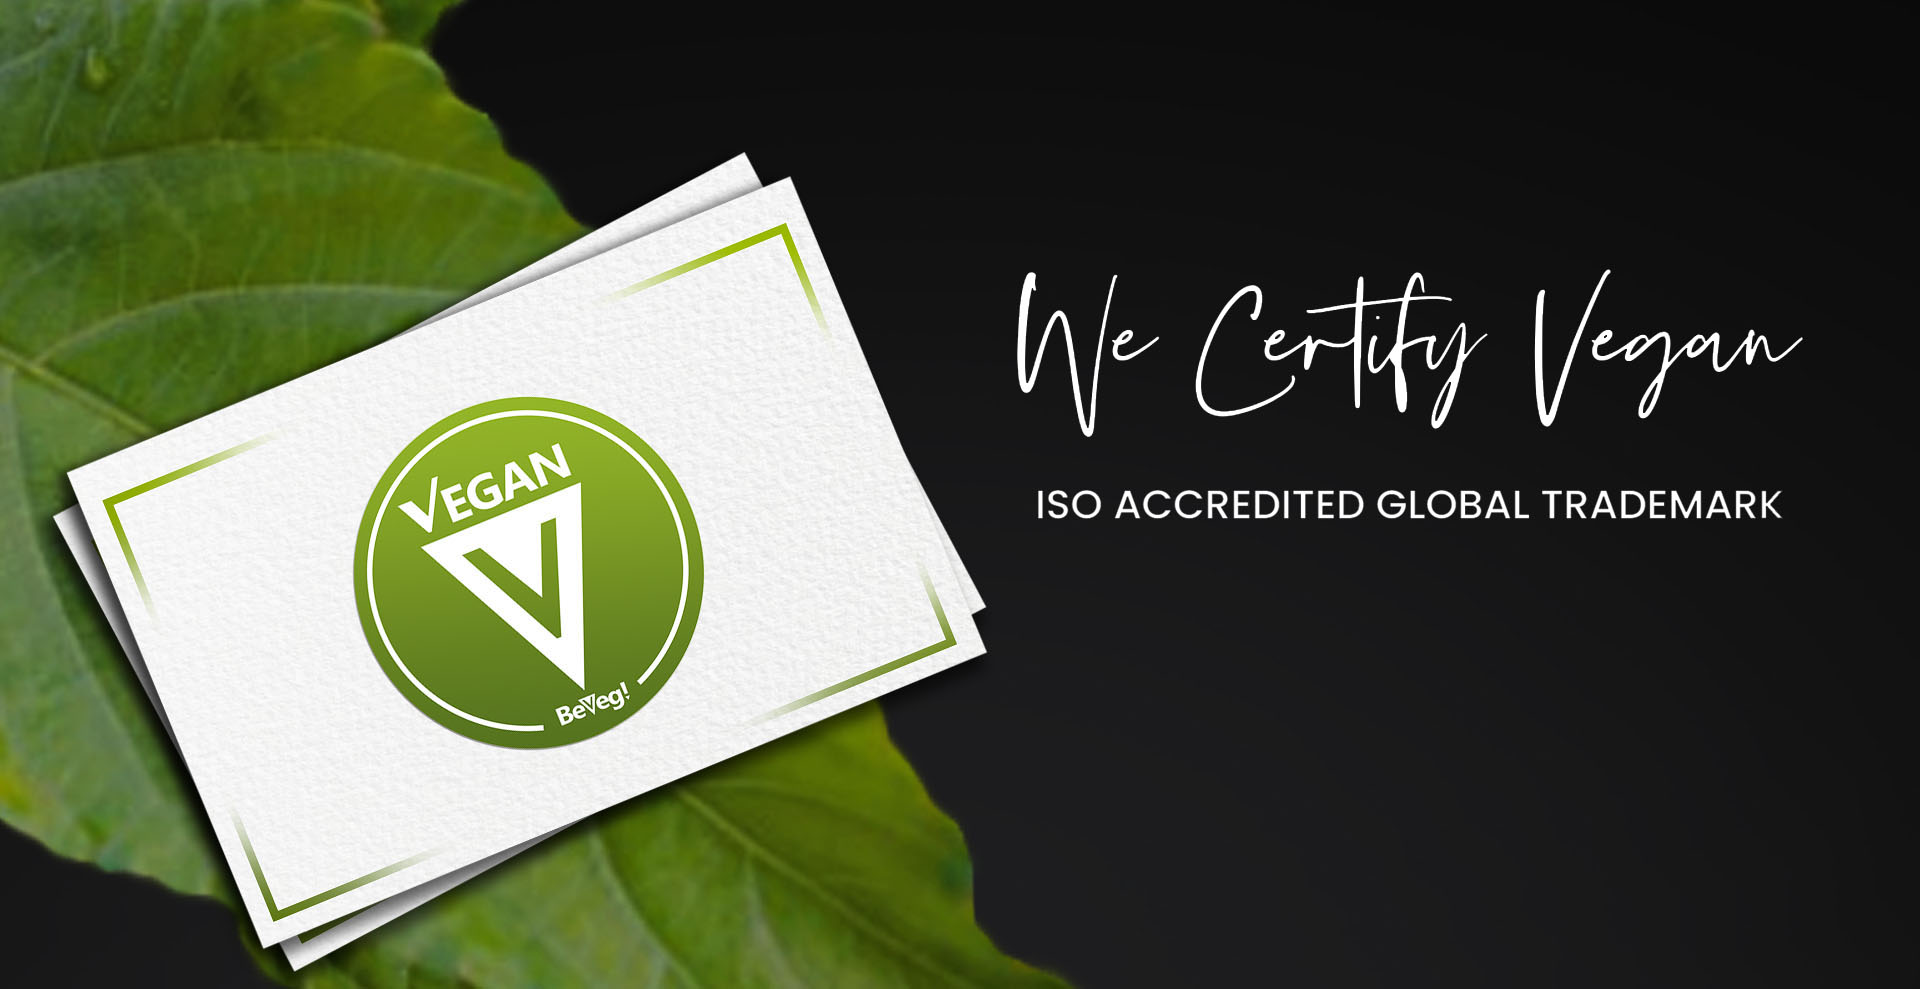 vKind: Vegan Certification with BeVeg